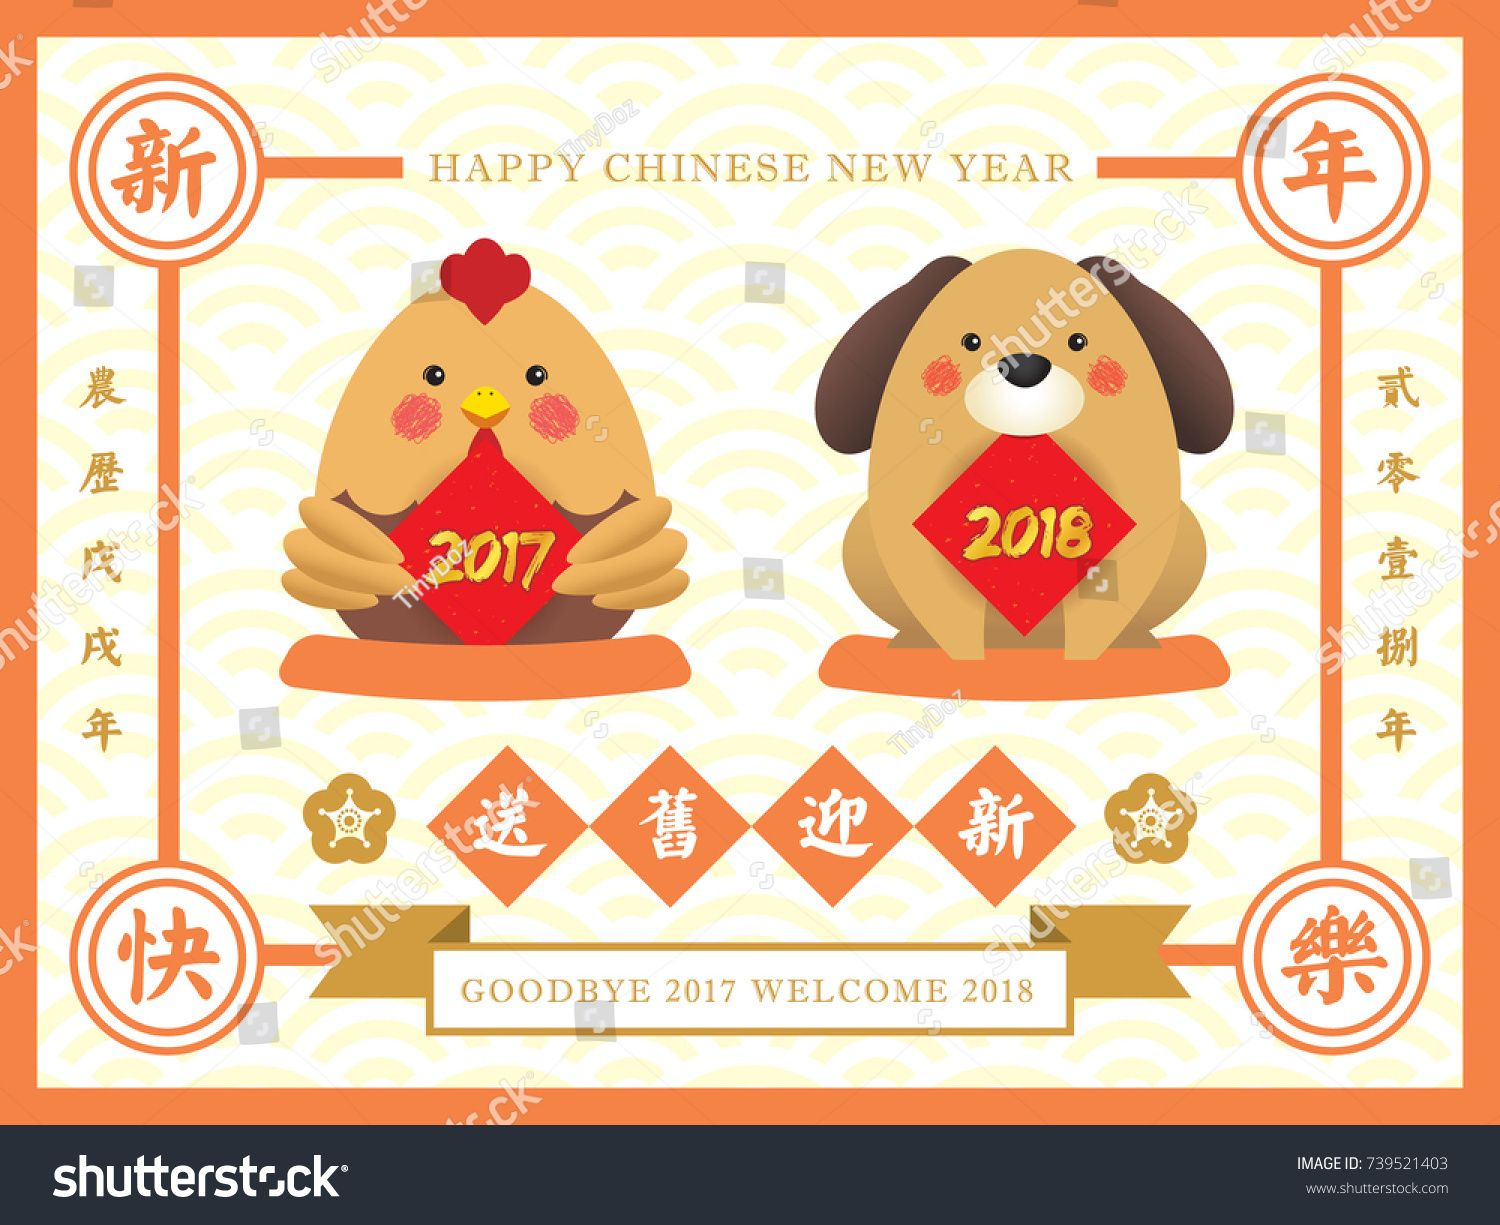 Chinese New Year Greeting Card With Cute Cartoon Chicken And Dog